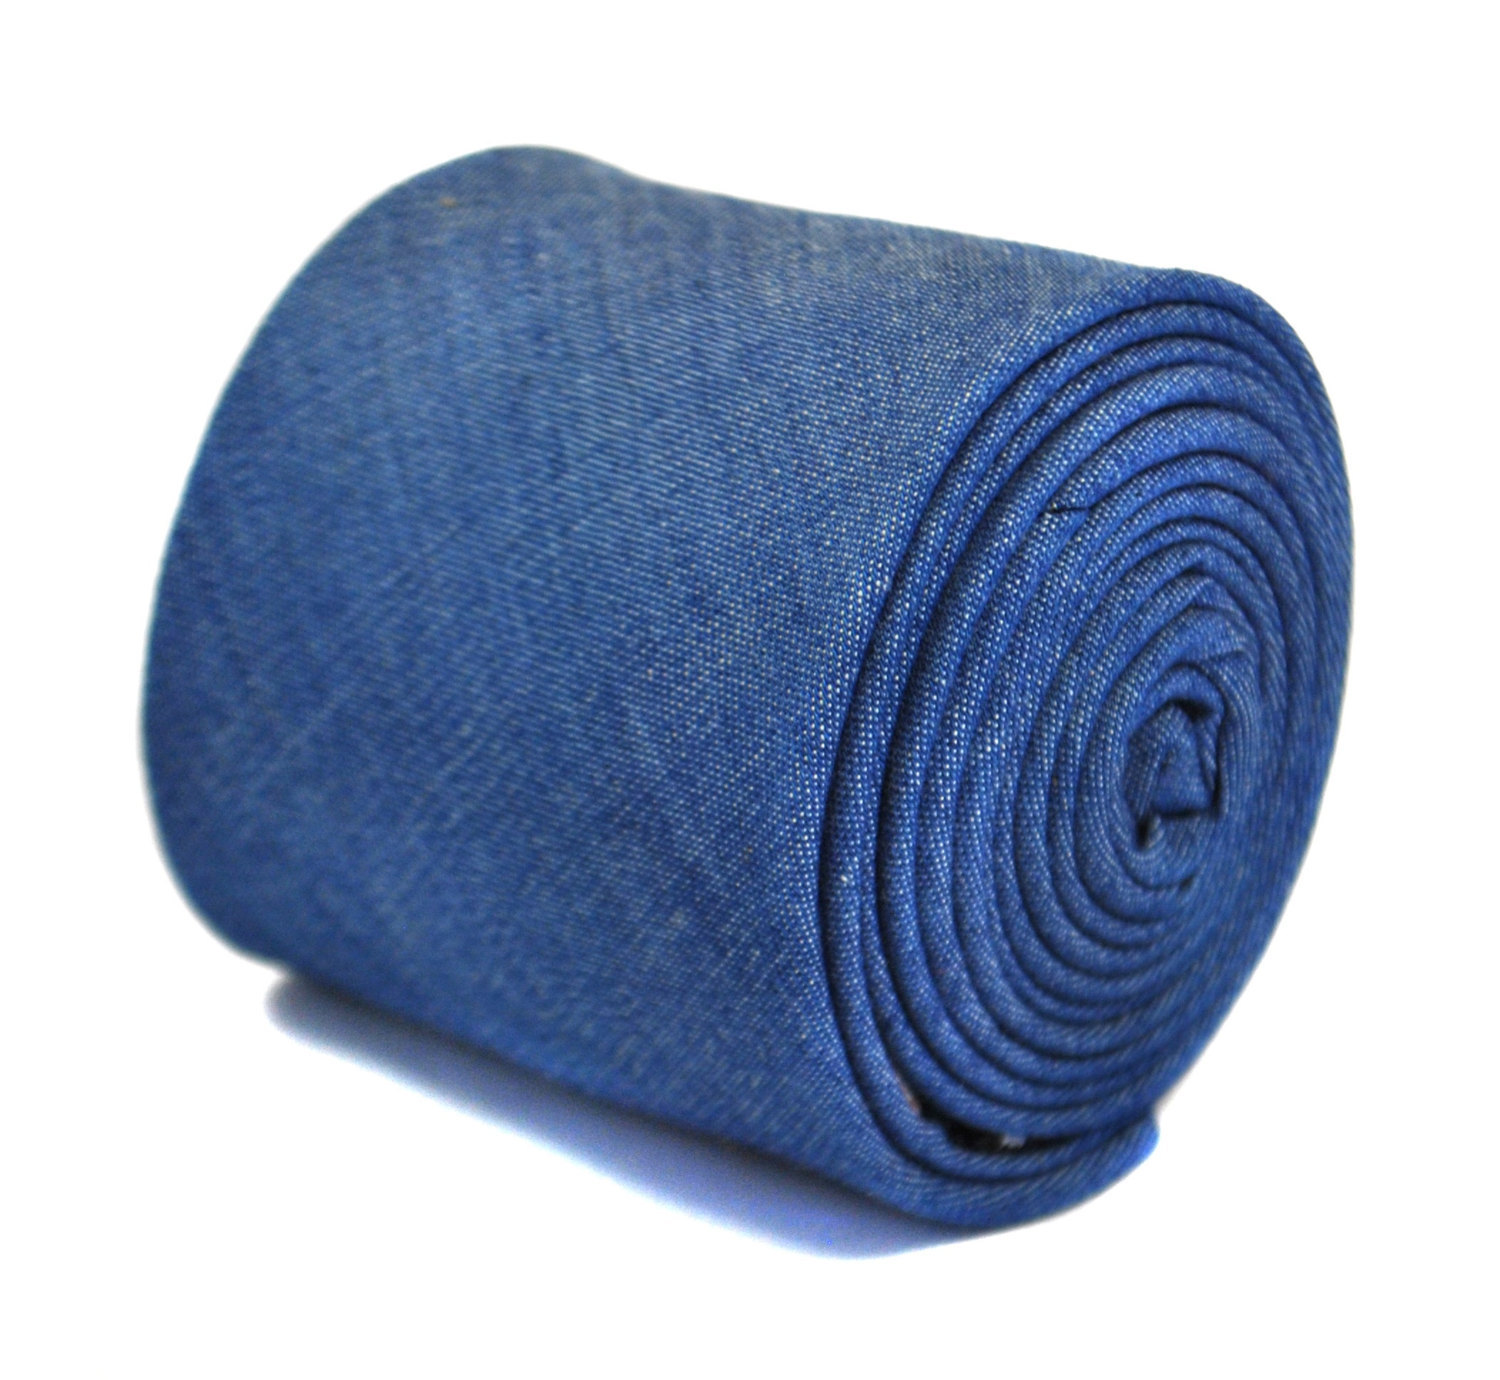 blue denim plain 100% cotton linen tie by Frederick Thomas FT2168